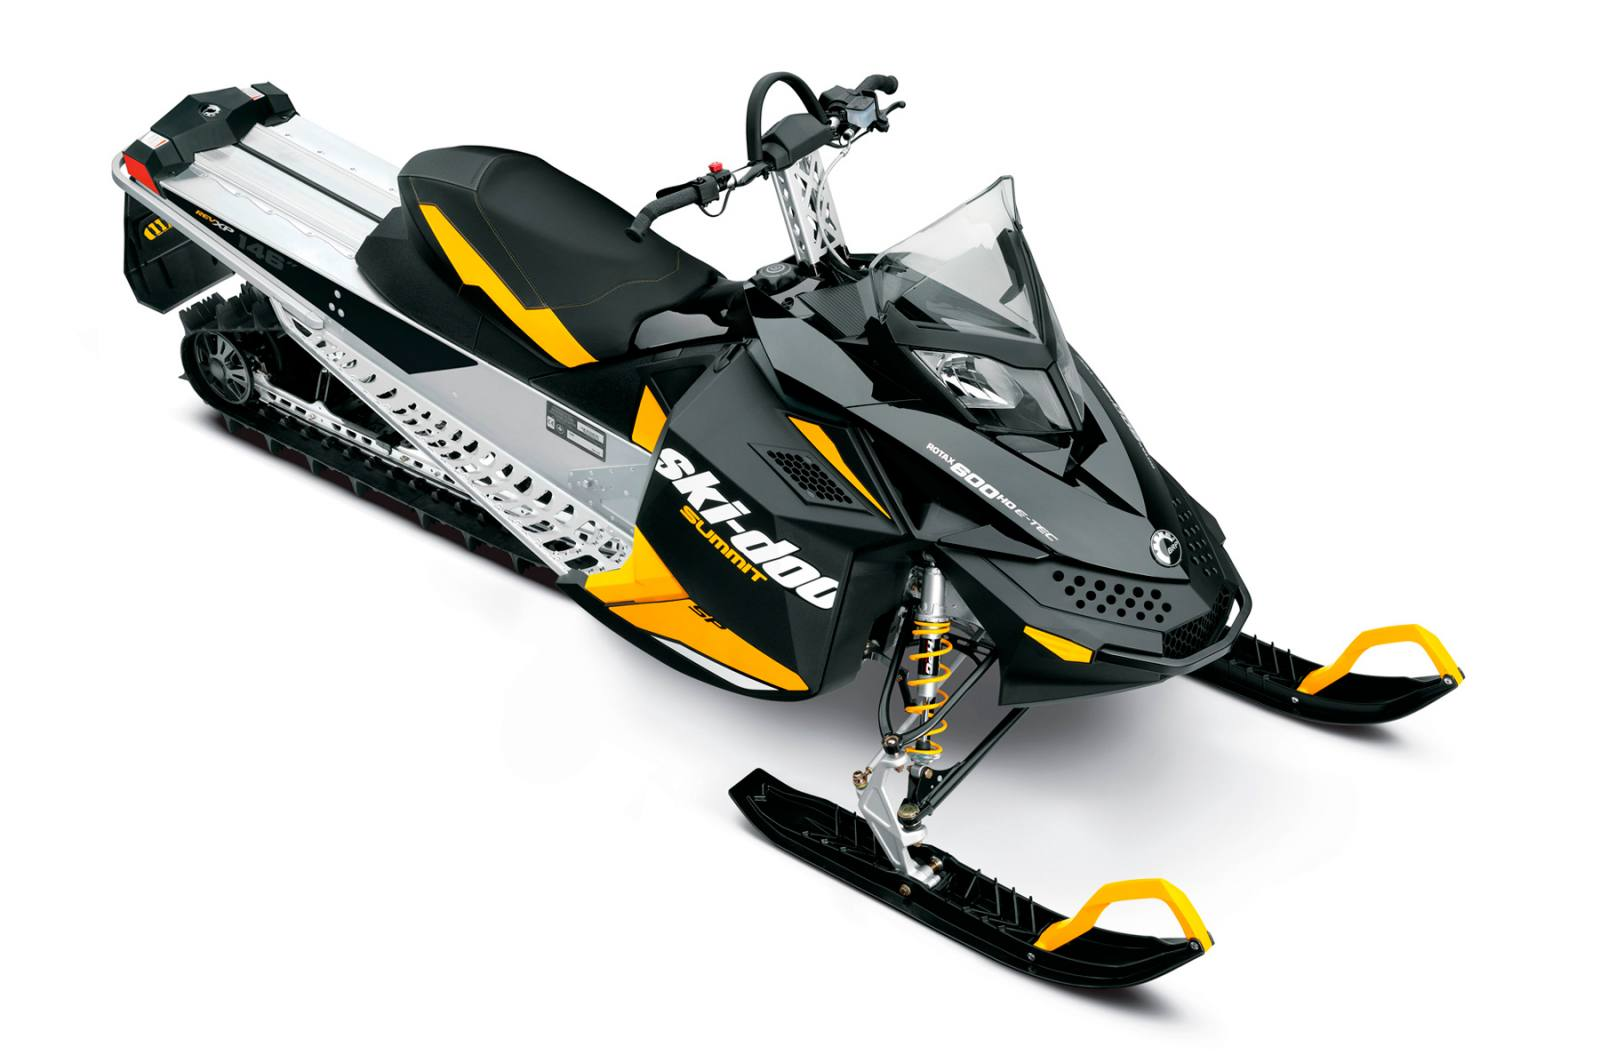 2012 Ski Doo Summit Sp E Tec 600 Ho 146 For Sale In Cooke City Mt Wiring Diagram Hot Grips